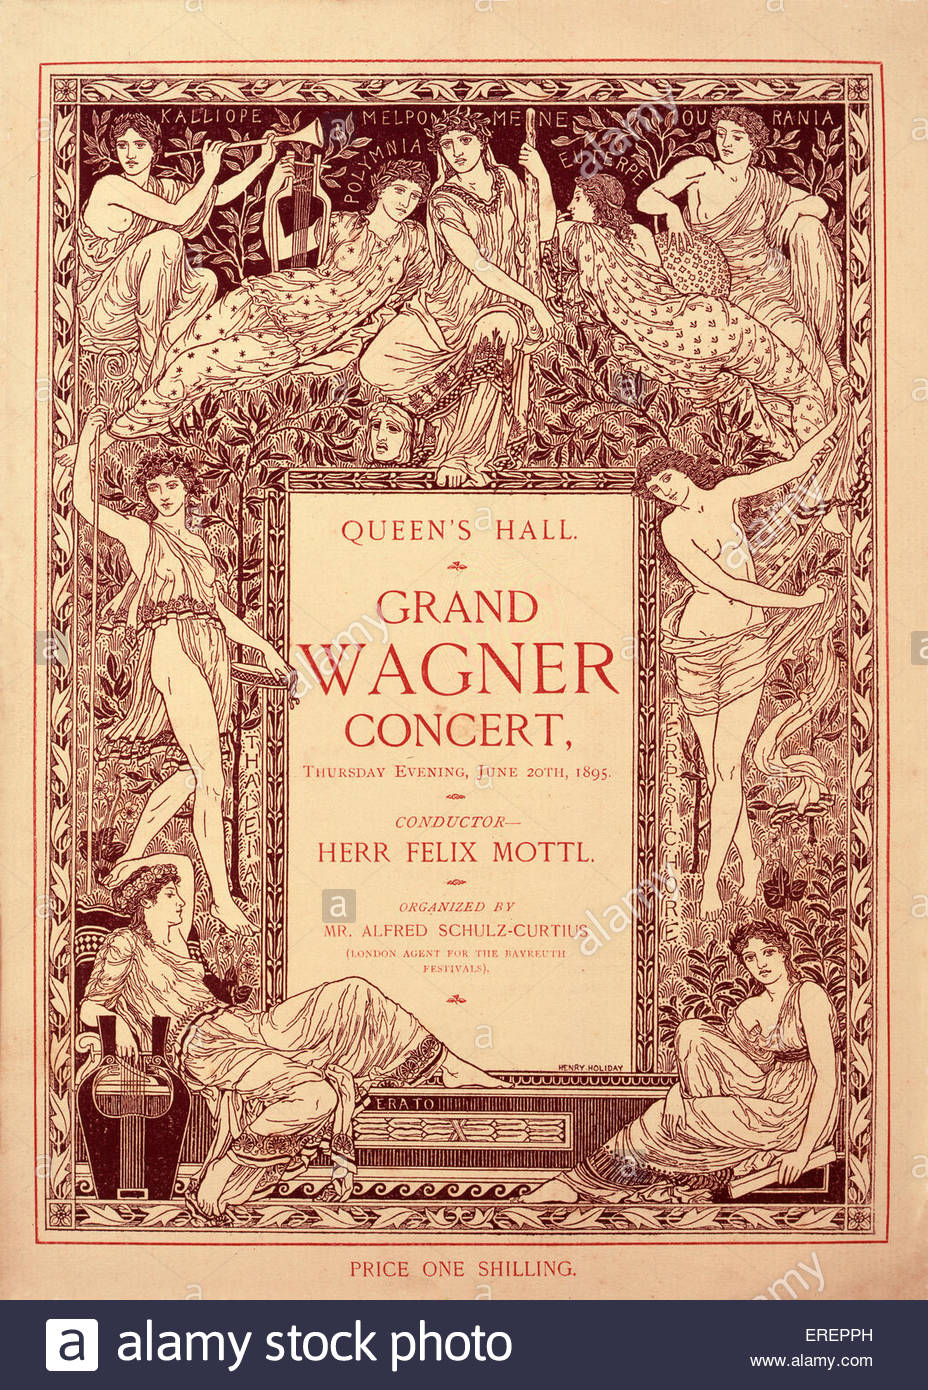 Richard Wagner concert - programme. Performed 20th June  1895, Queen's Hall, London.  Conducted by Felix Mottl. - Stock Image